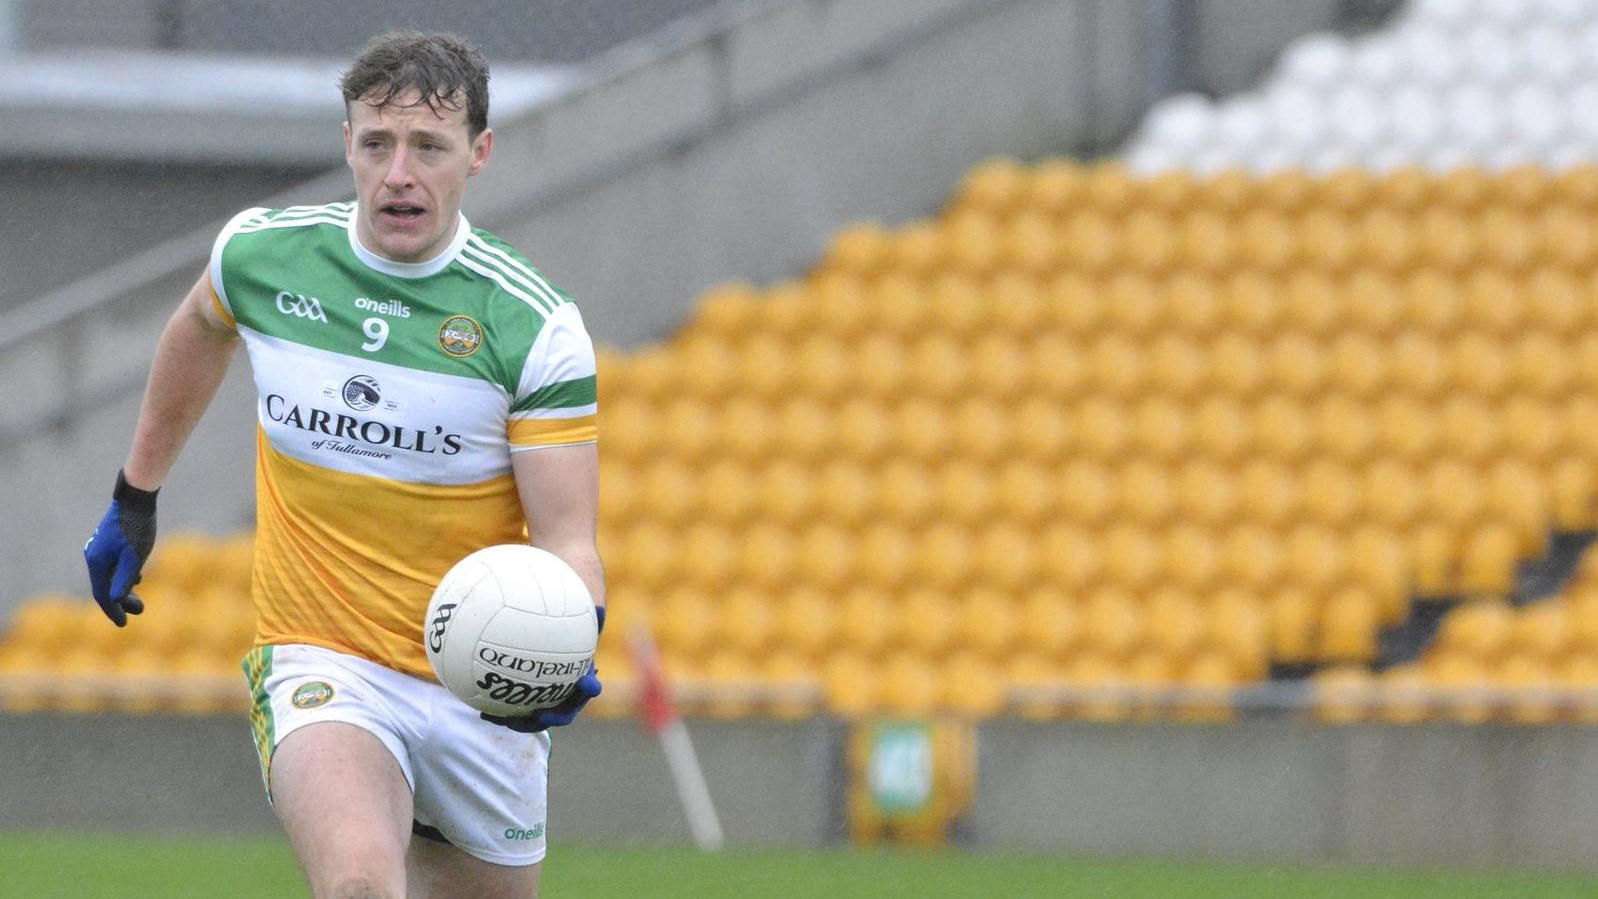 No Joy For Offaly in O'Byrne Cup Final